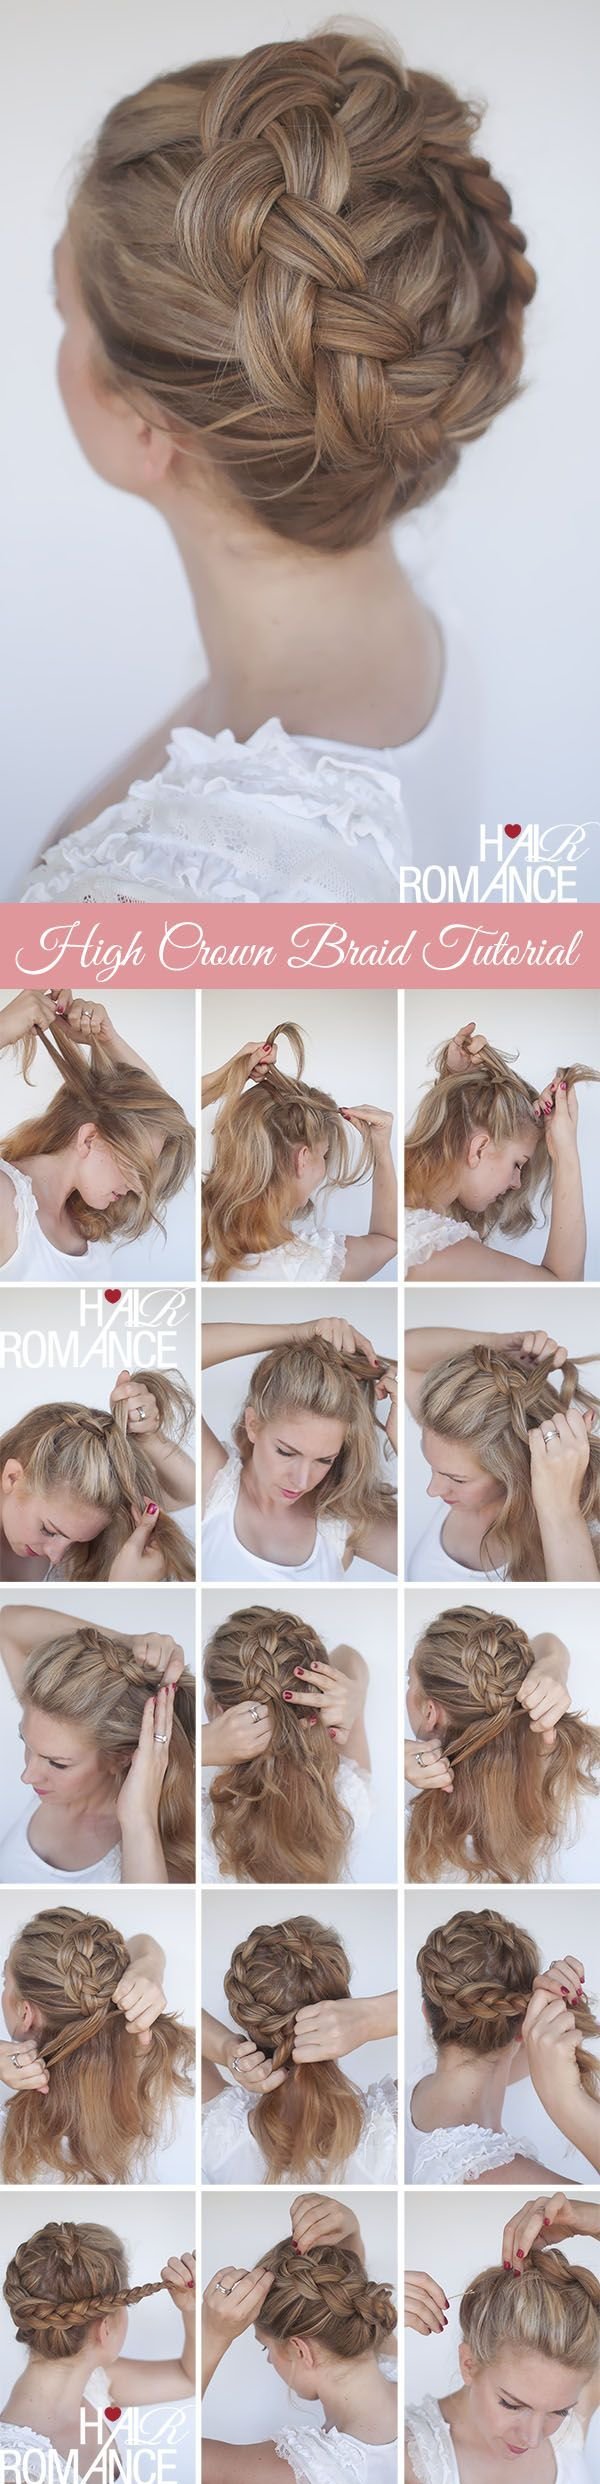 french twist--this similar to what I had years ago, a european french twist that I had done for a lambda chi formal and a friends wedding. Loved the updo, just a mess to take down.